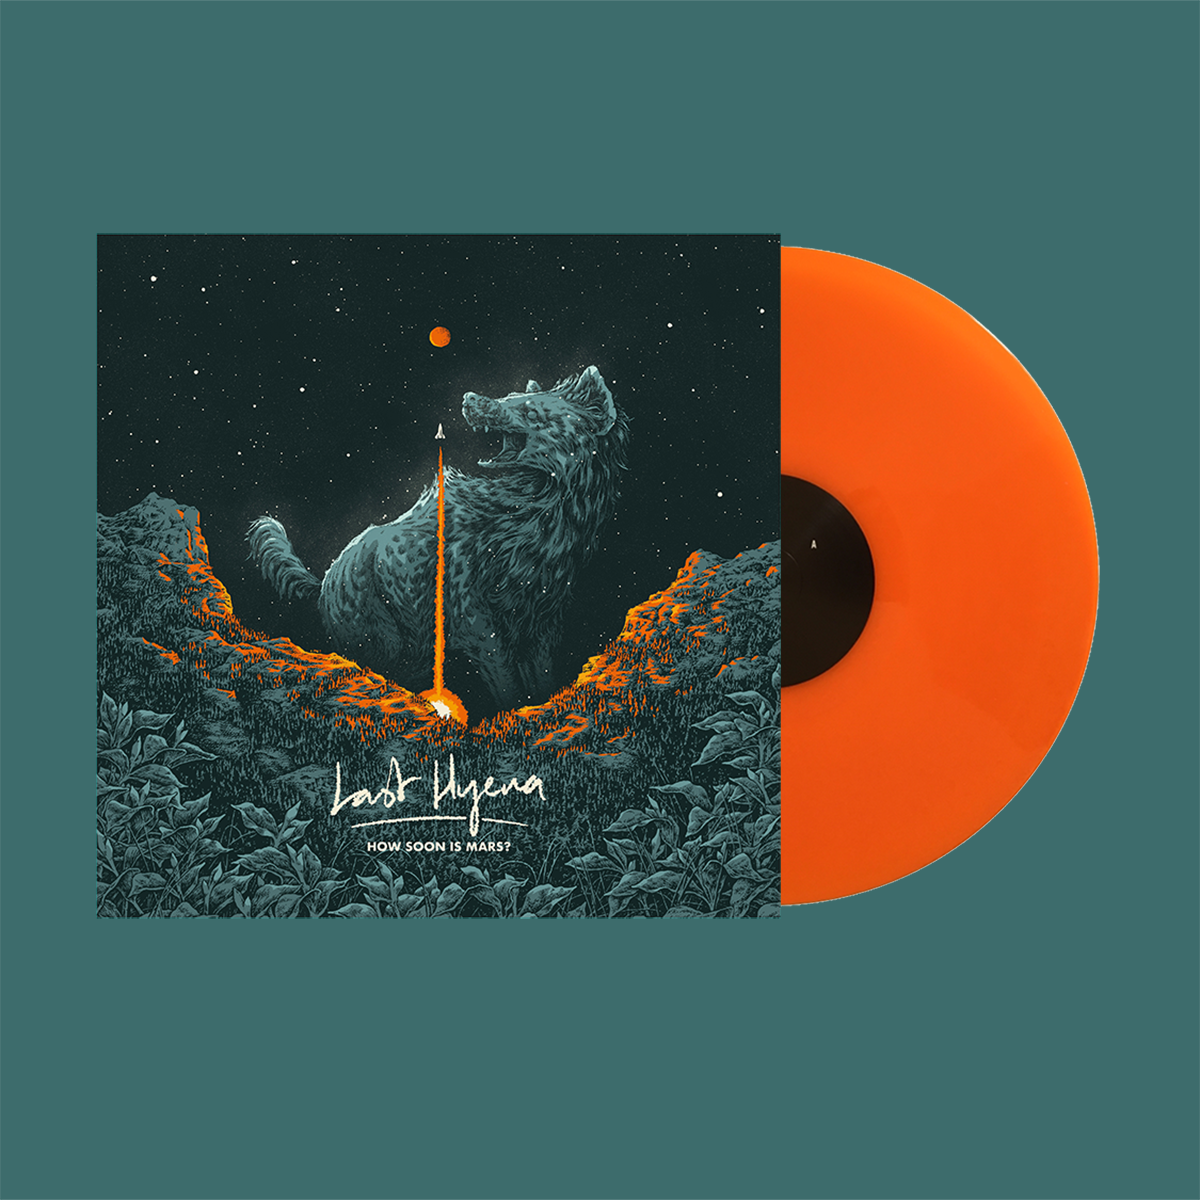 Last Hyena - How Soon Is Mars (Ltd Edition Orange LP) *PREORDER*